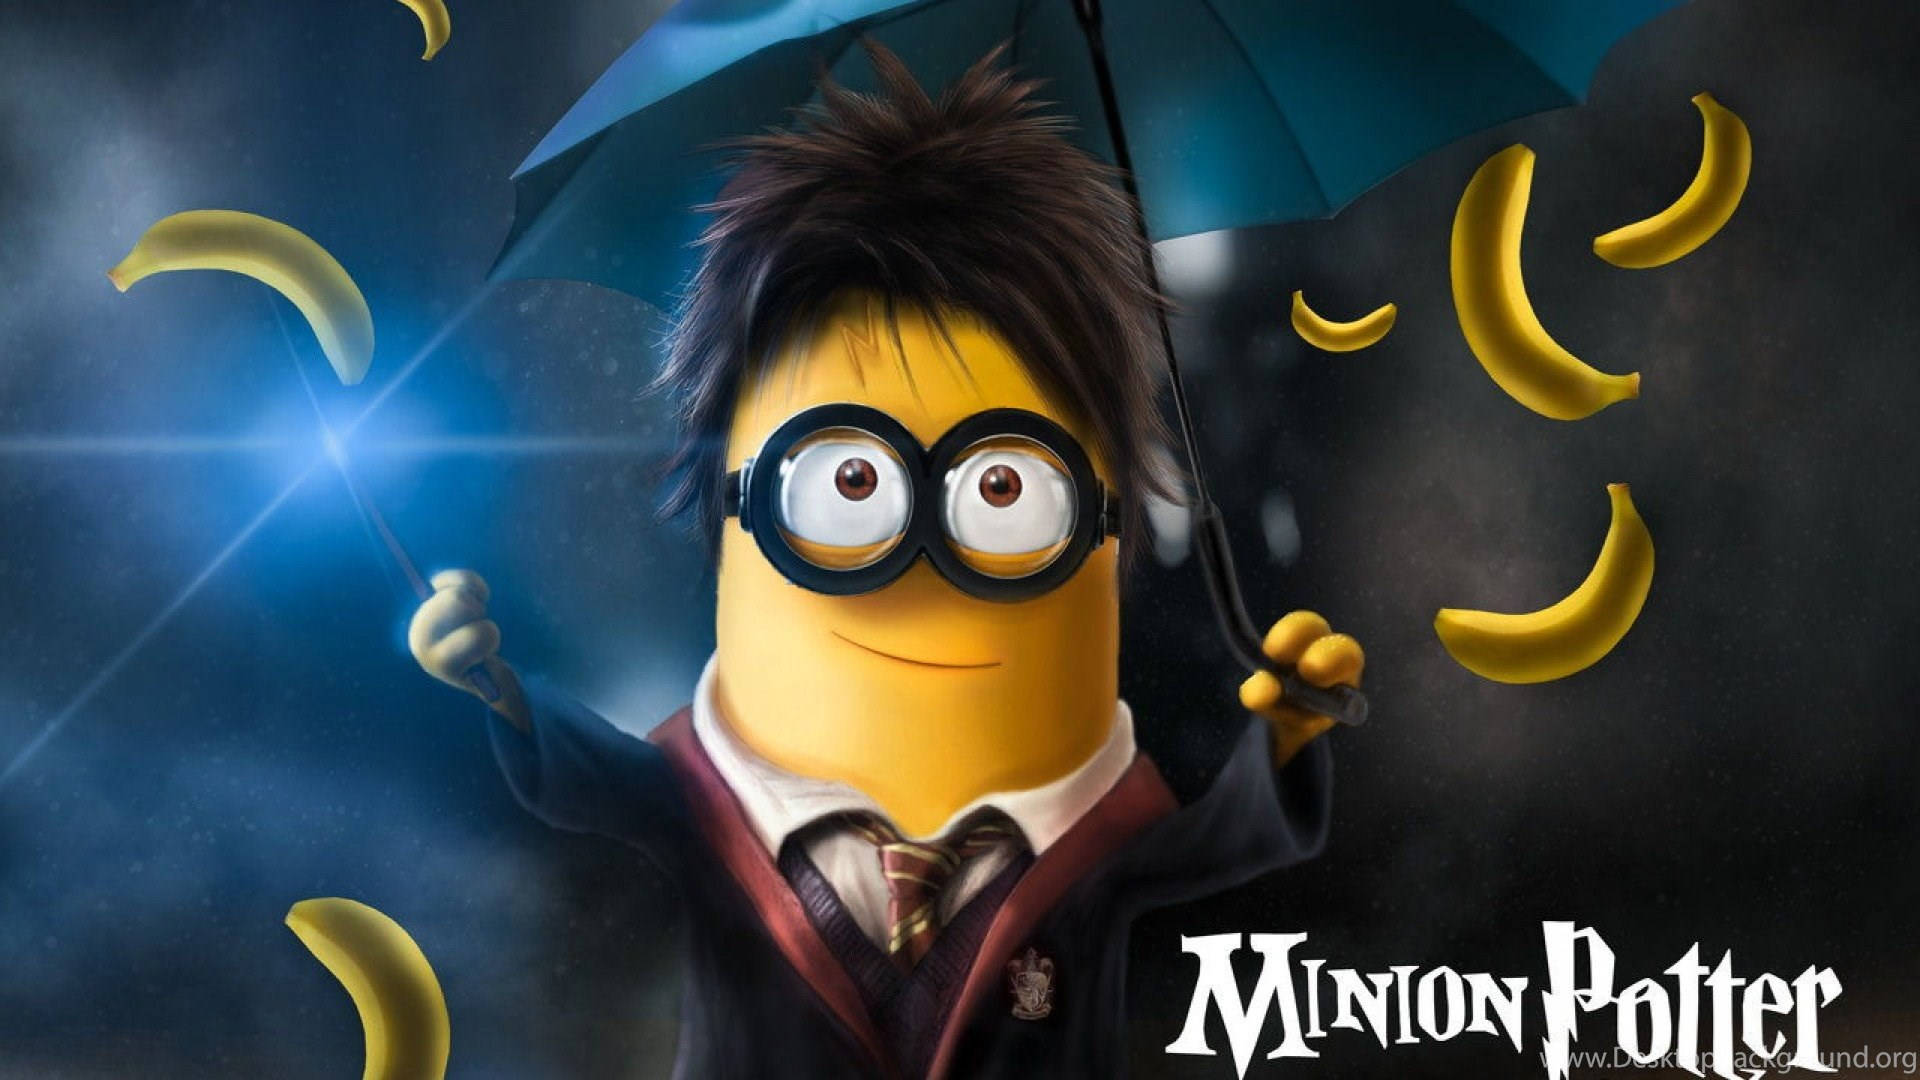 minion harry potter 1920x1080 (1080p) wallpapers minions wallpapers